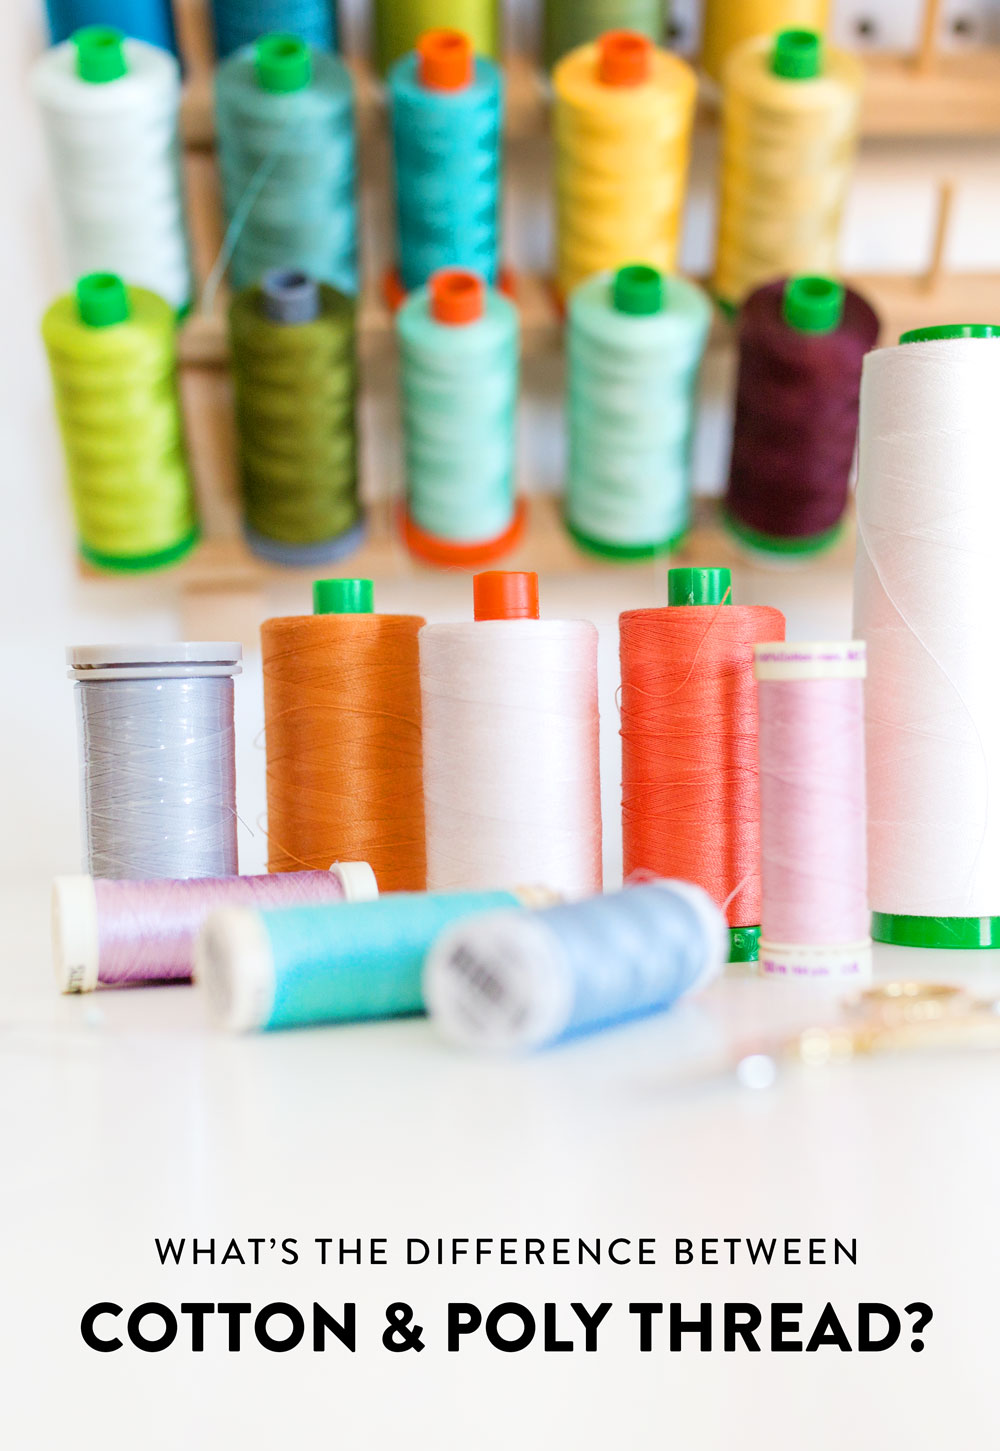 What's the difference between cotton and poly thread? Both can be wonderful for sewing, but each has very distinct strengths and weaknesses.